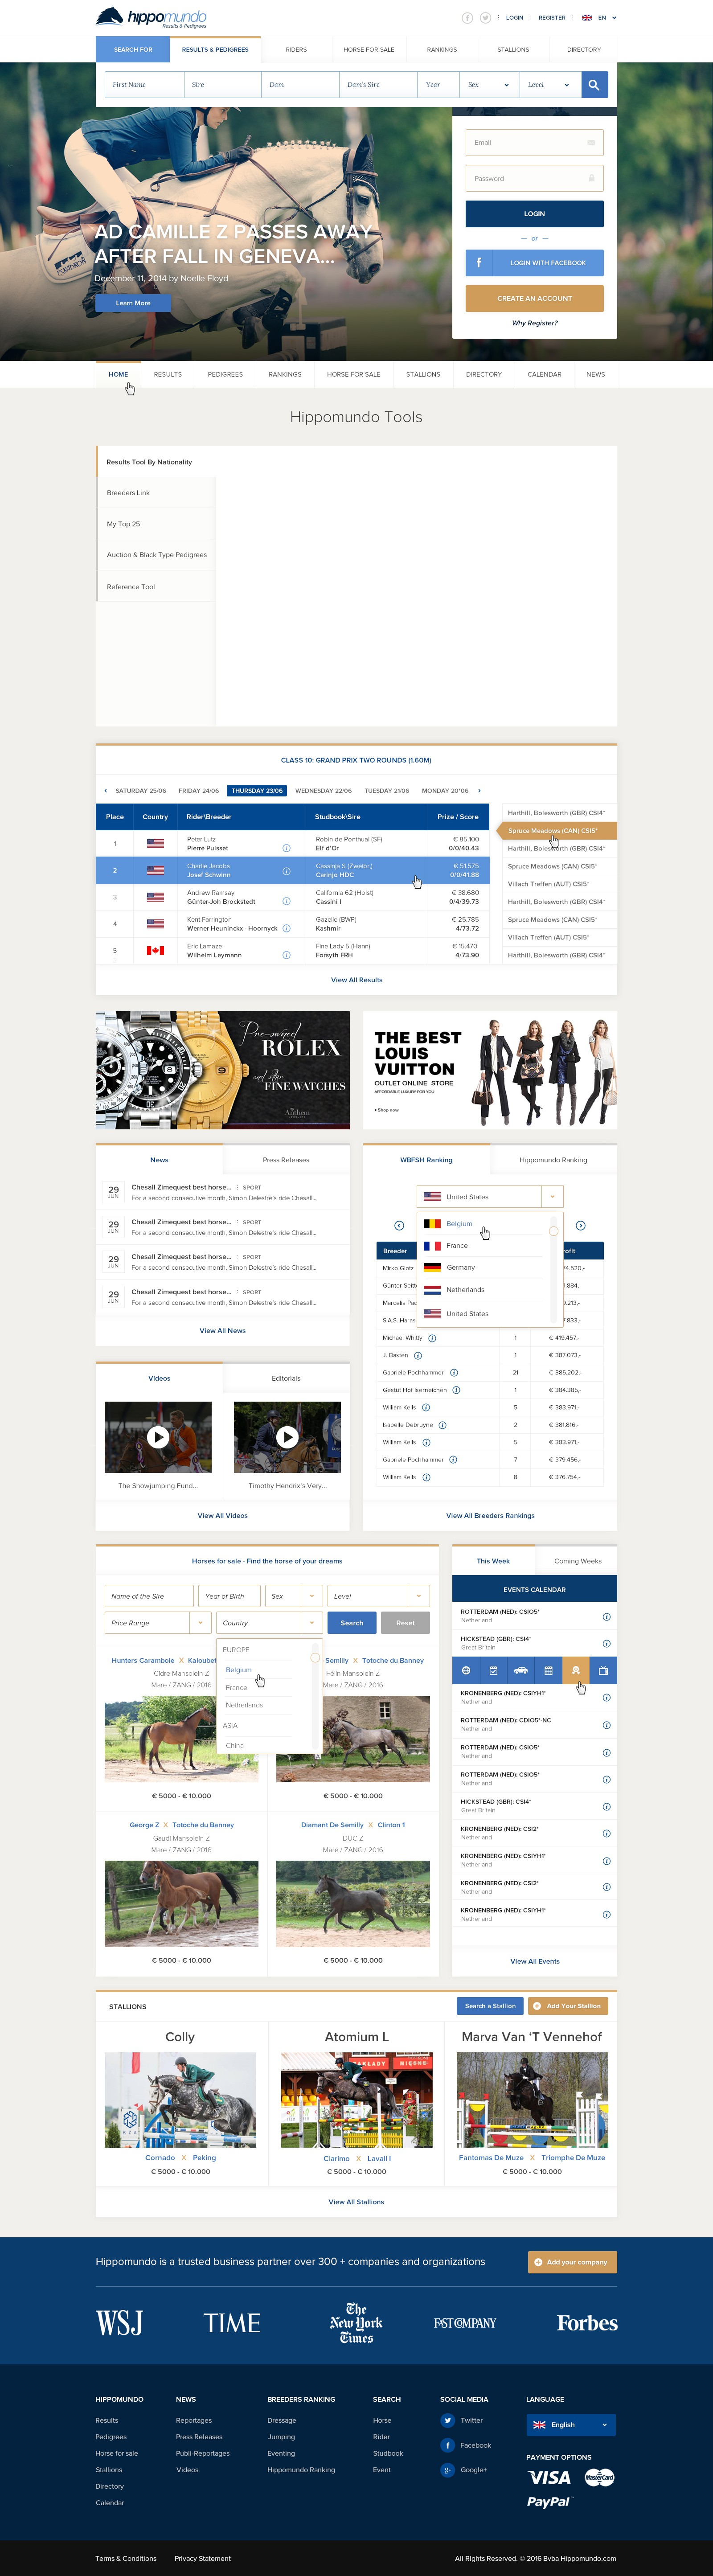 New webdesign for the global leader in horse results and pedigrees